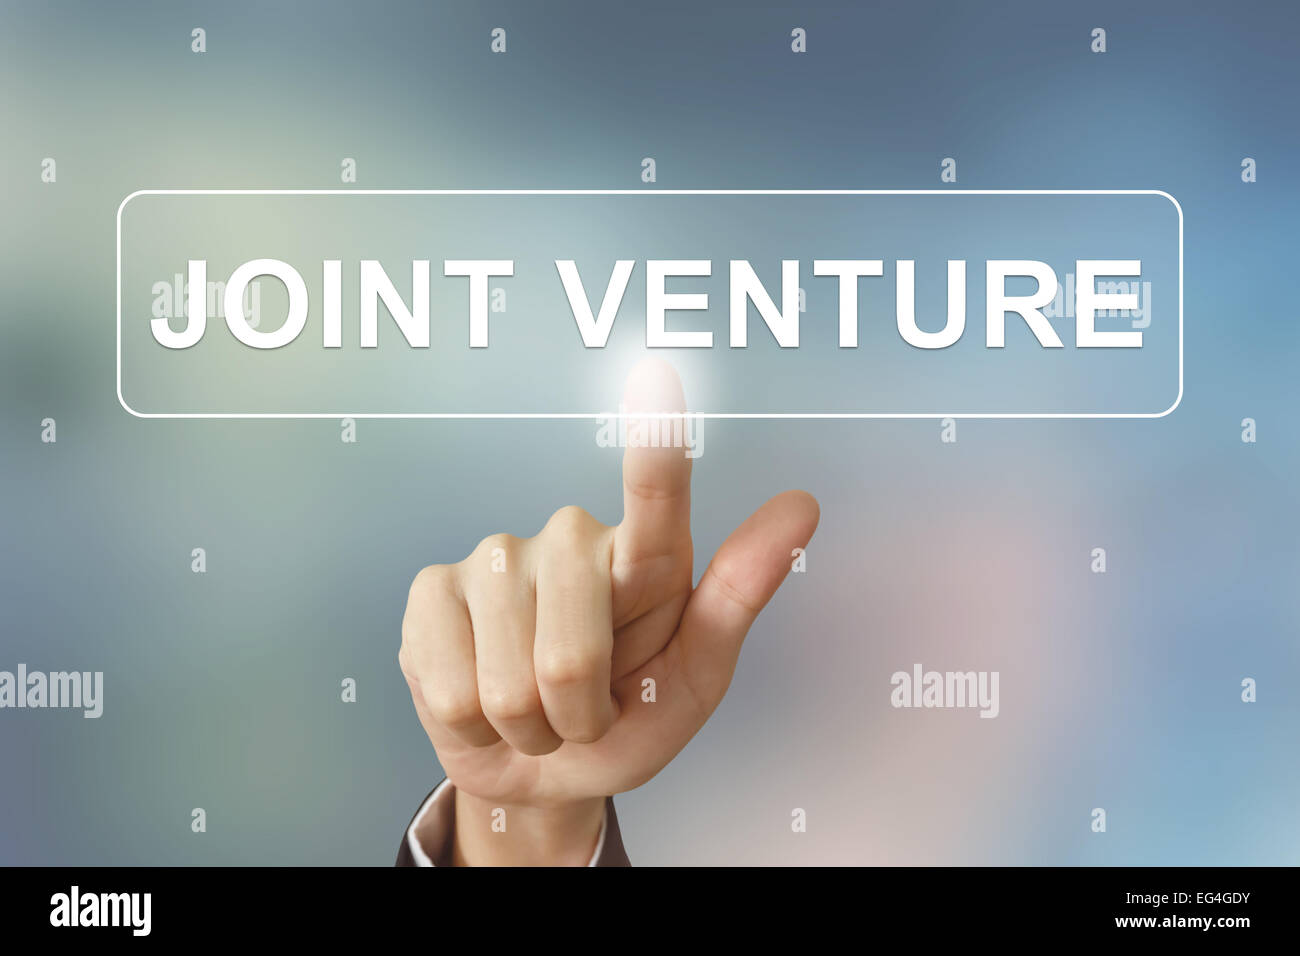 business hand pushing joint venture button on blurred background - Stock Image